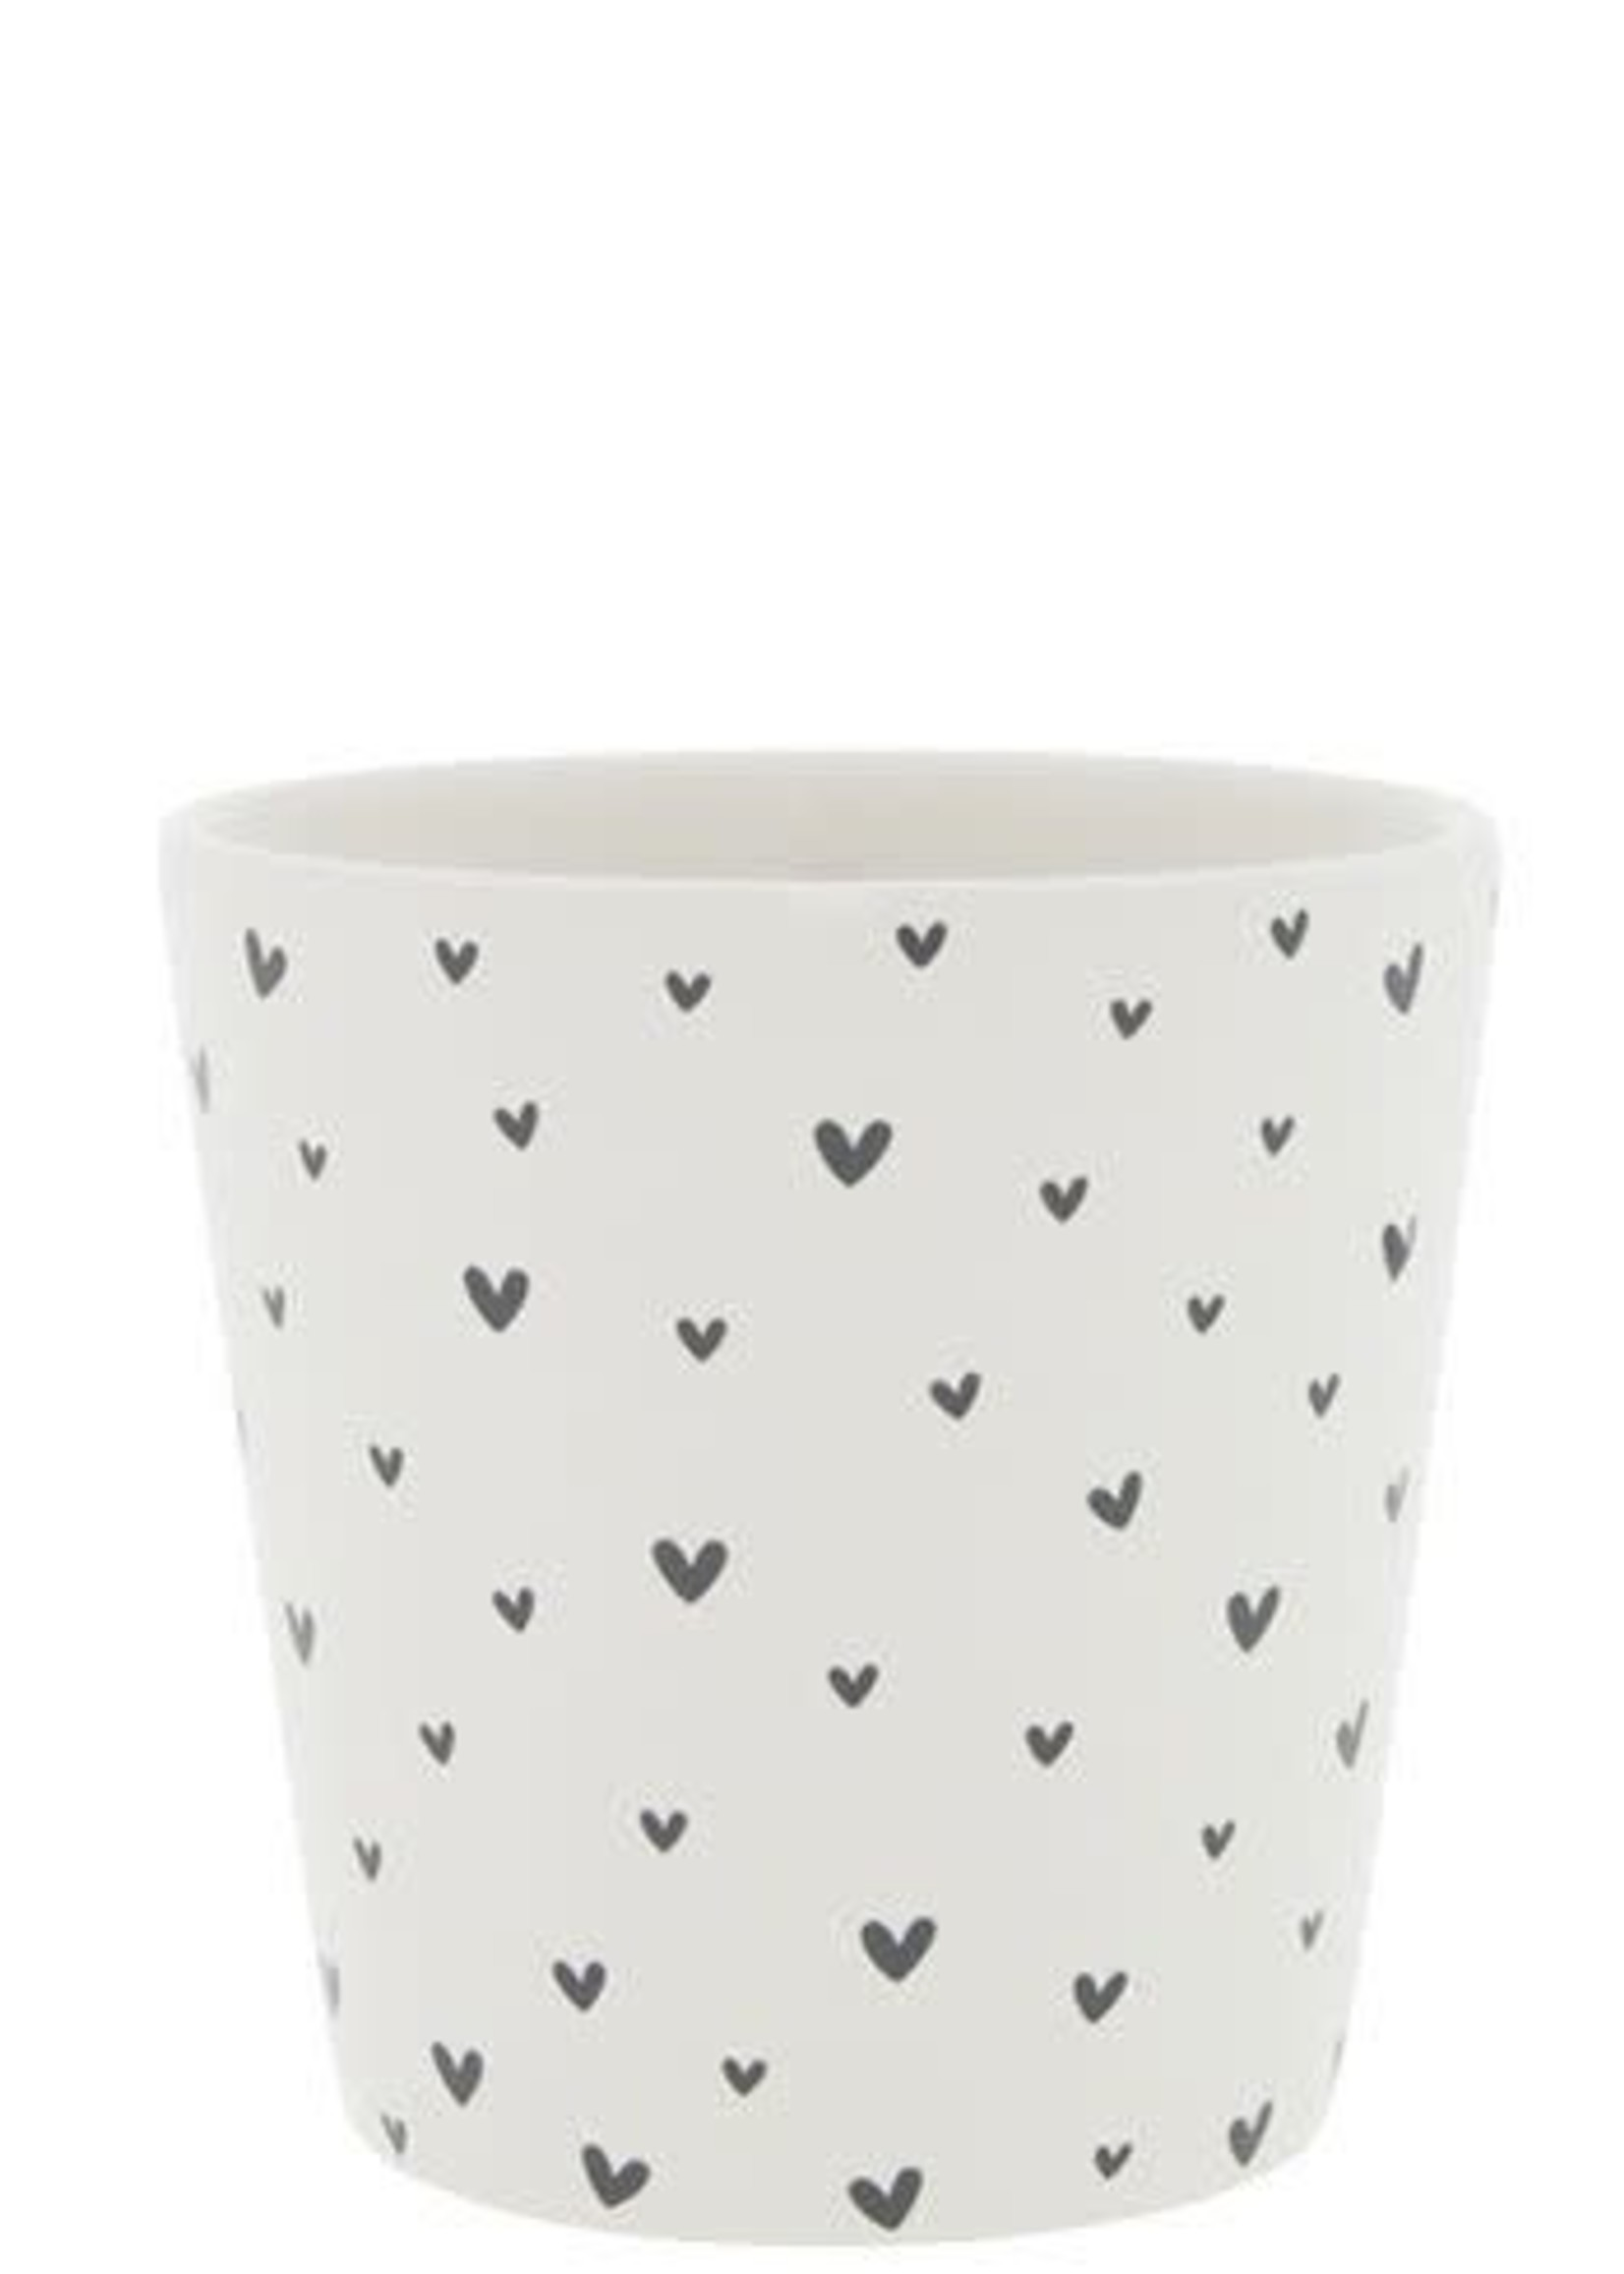 BASTION COLLECTIONS Cup white / little hearts 9x9x7,5